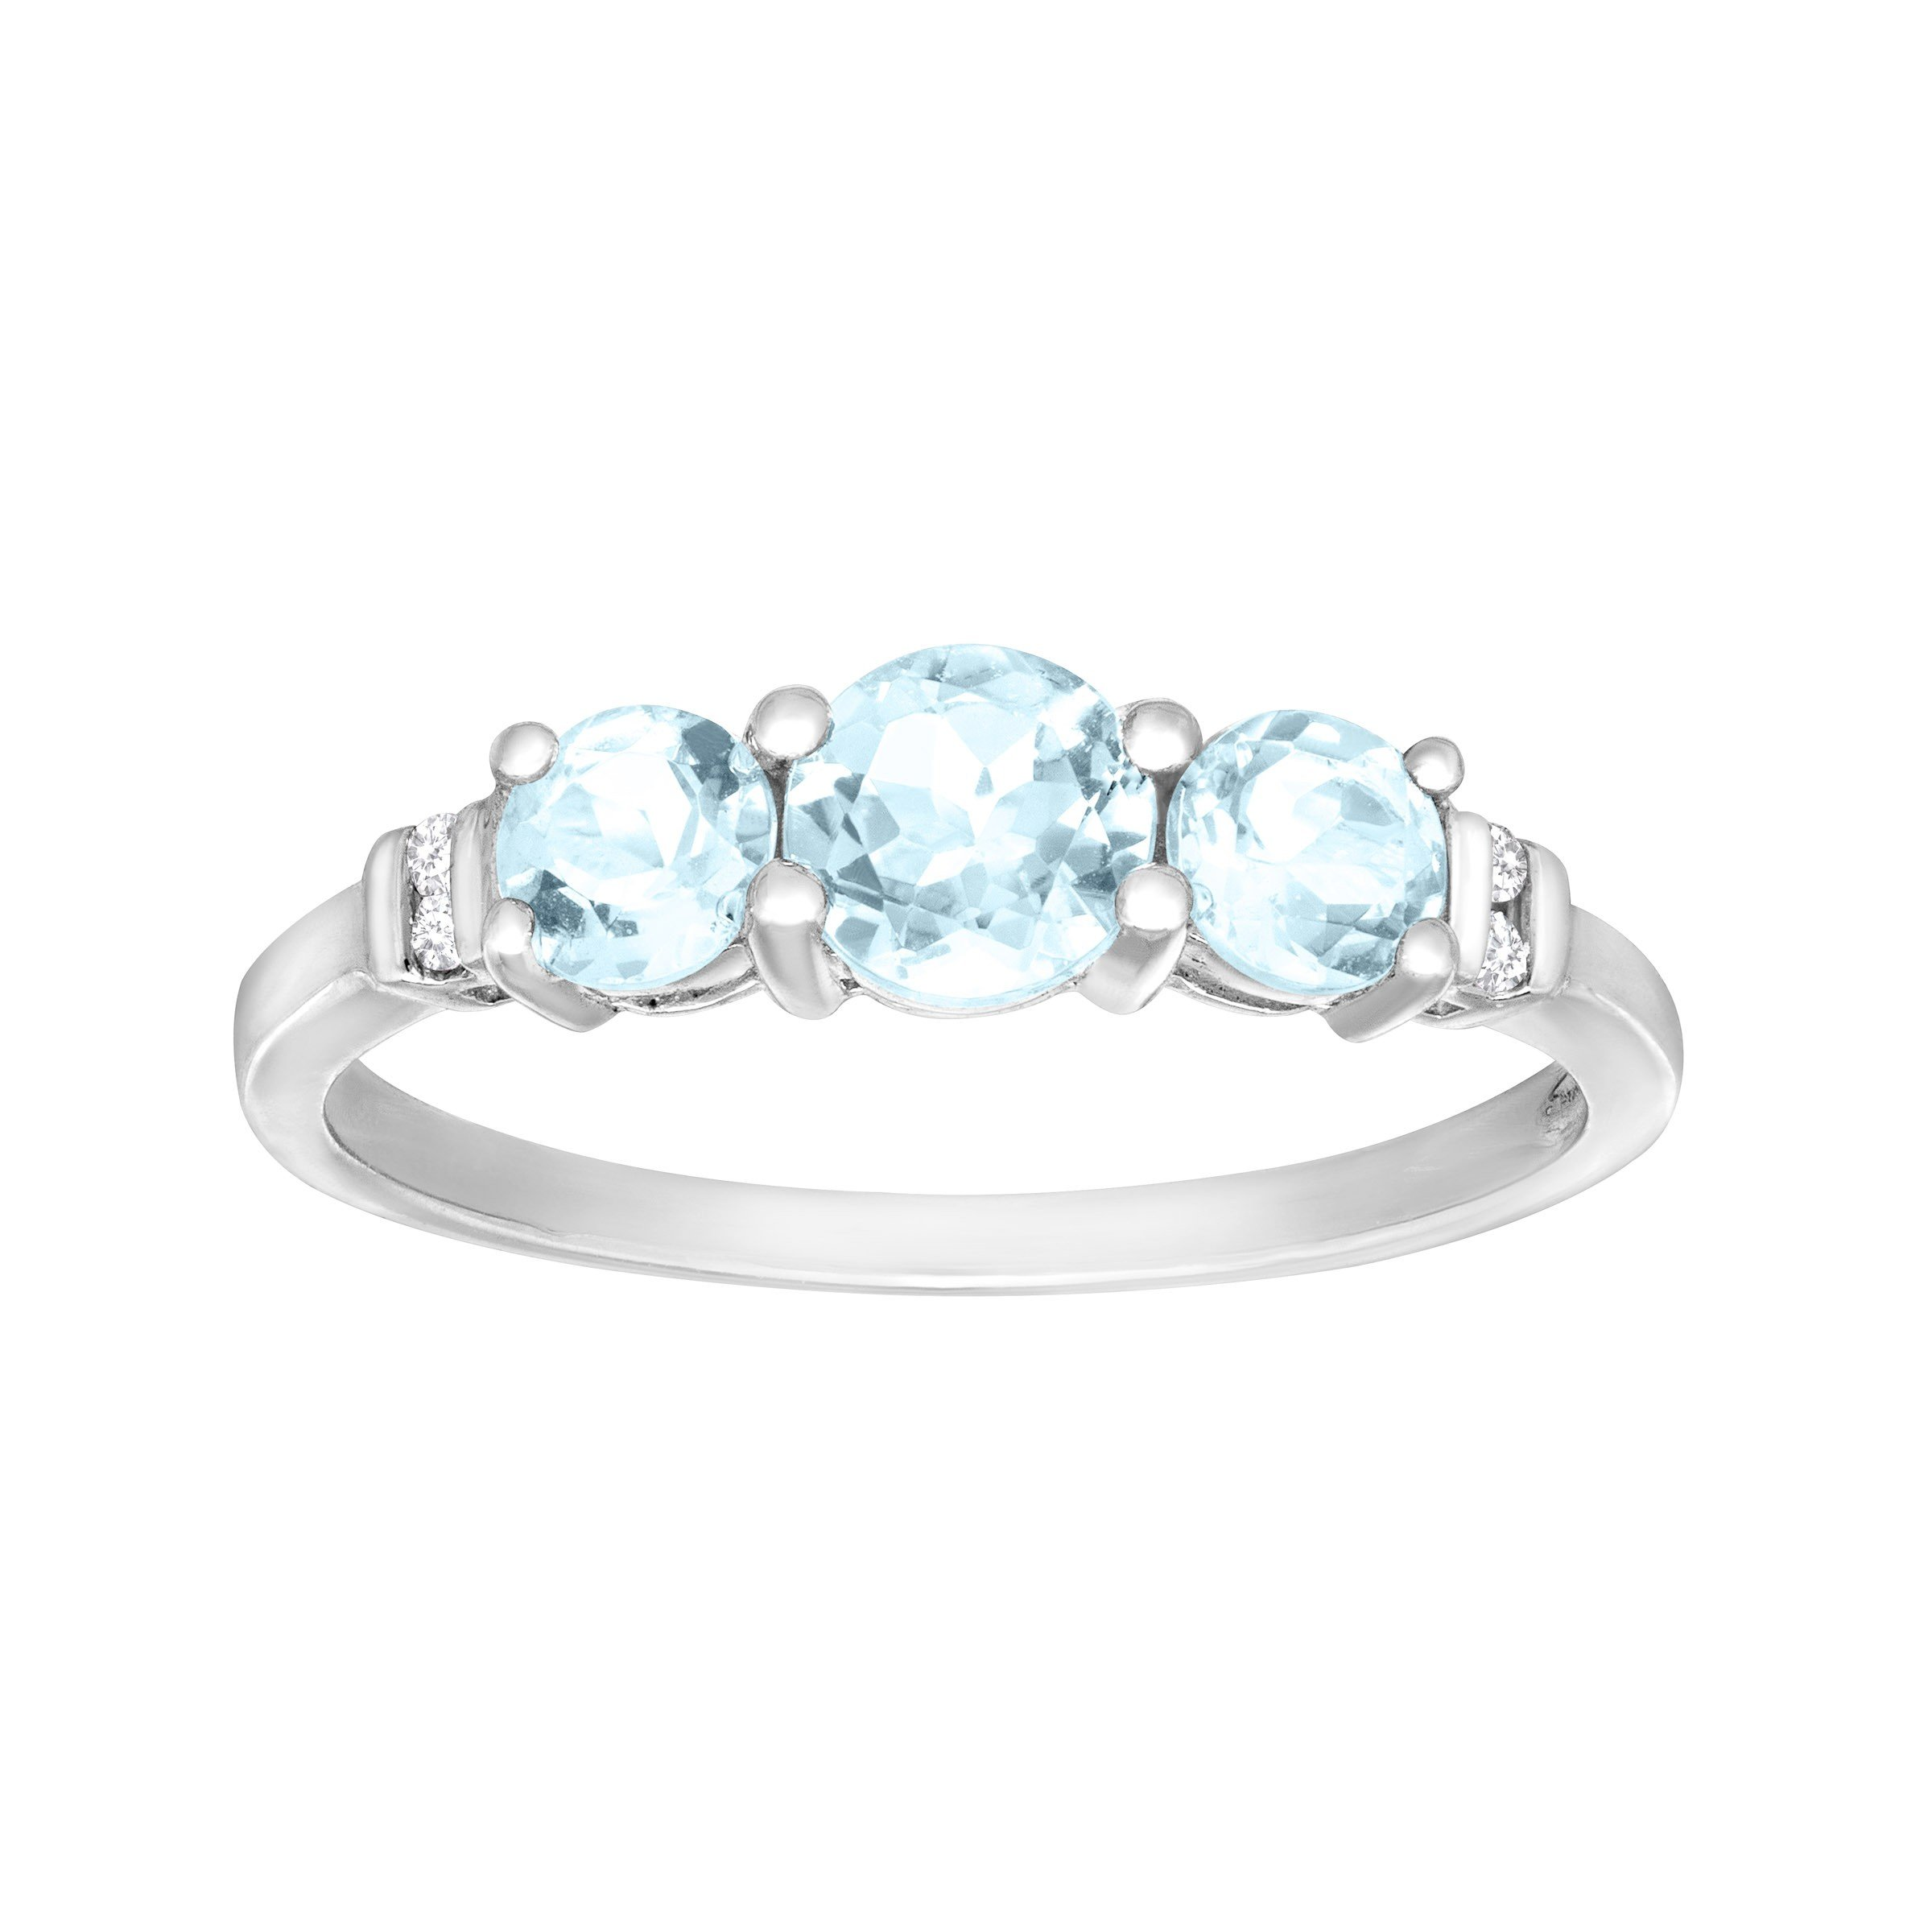 7/8 ct Aquamarine Ring with Diamonds in 10K White Gold Size 7